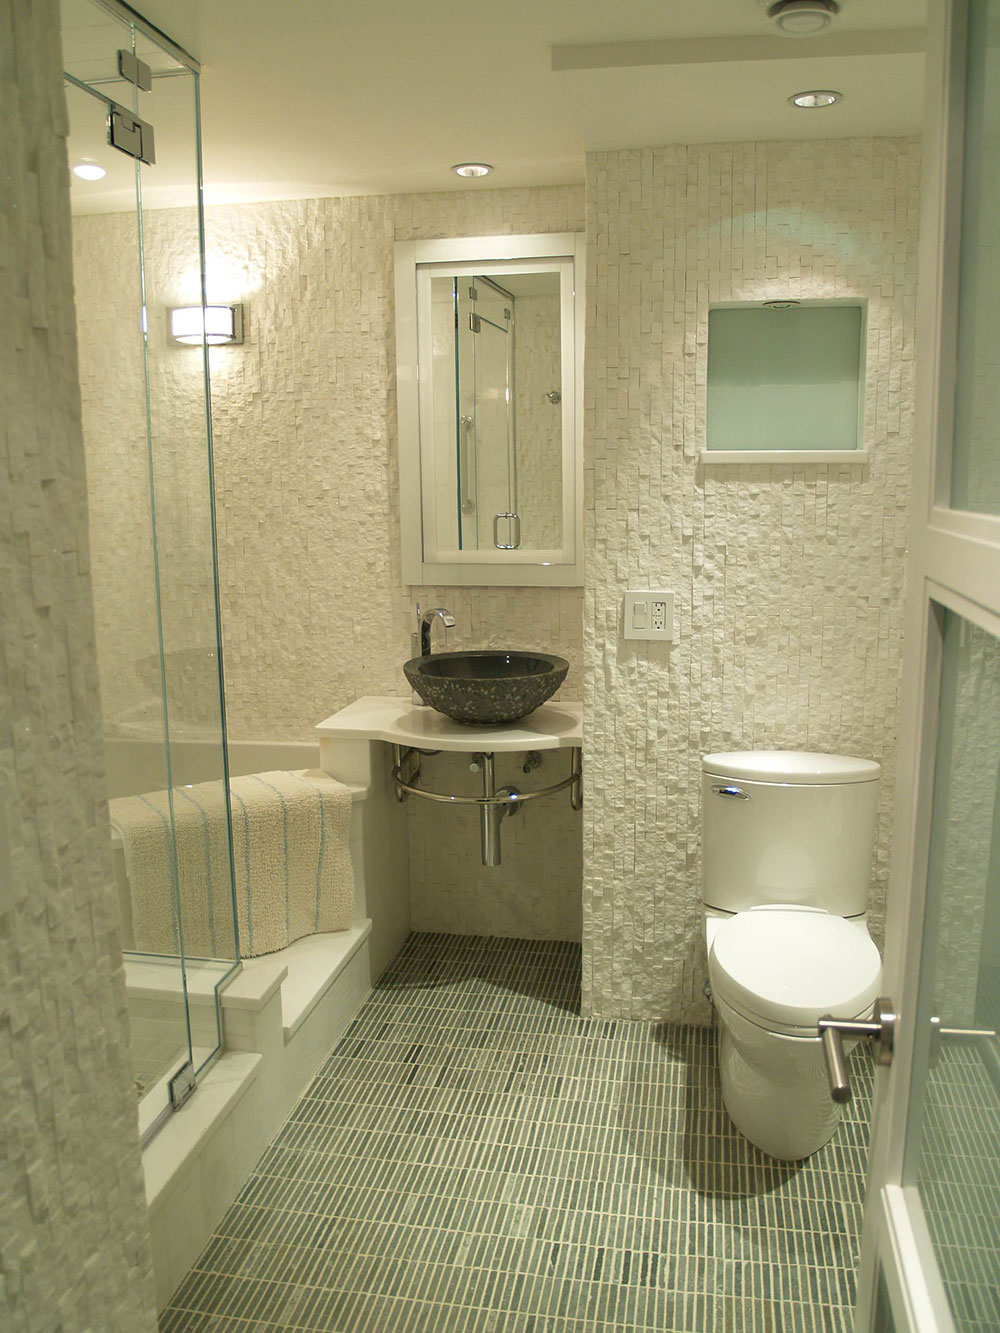 How To Make A Small Bathroom Look Bigger - Tips and Ideas How To Make A Small Bathroom Work on paint a bathroom, tank a bathroom, decorate a bathroom,